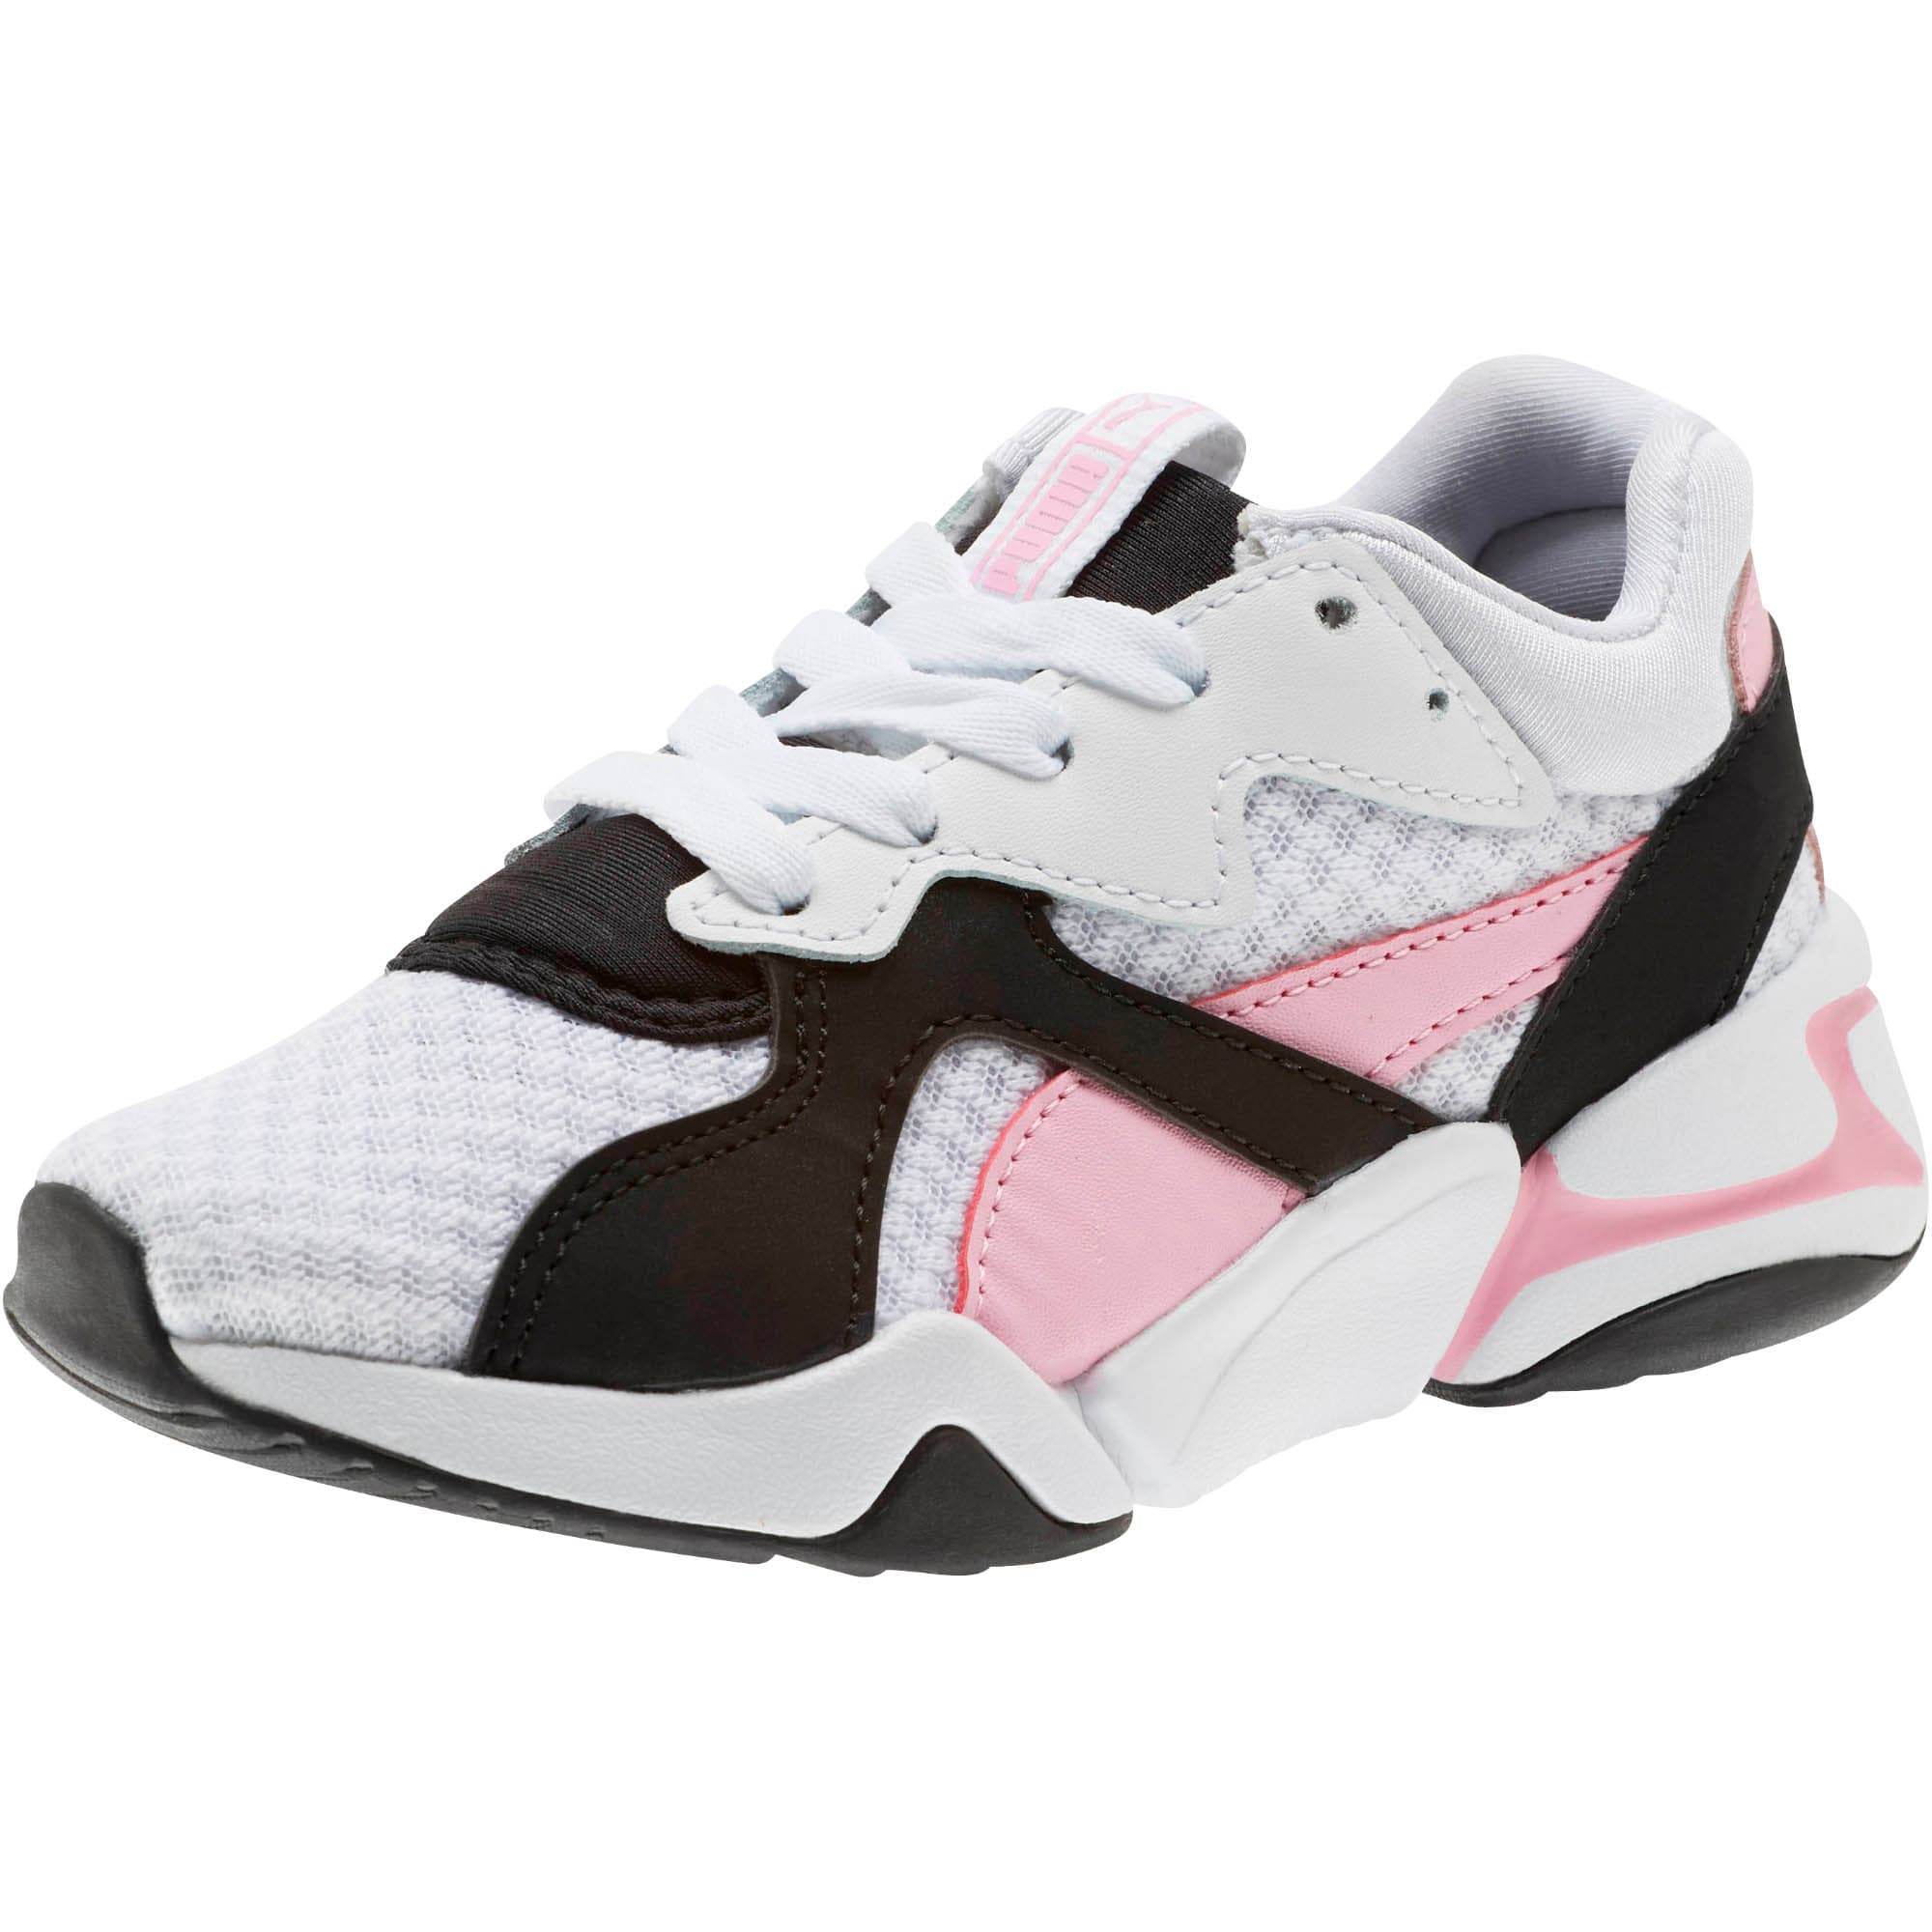 Thumbnail 1 of Nova '90s Bloc Sneakers PS, Puma Black-Puma White, medium